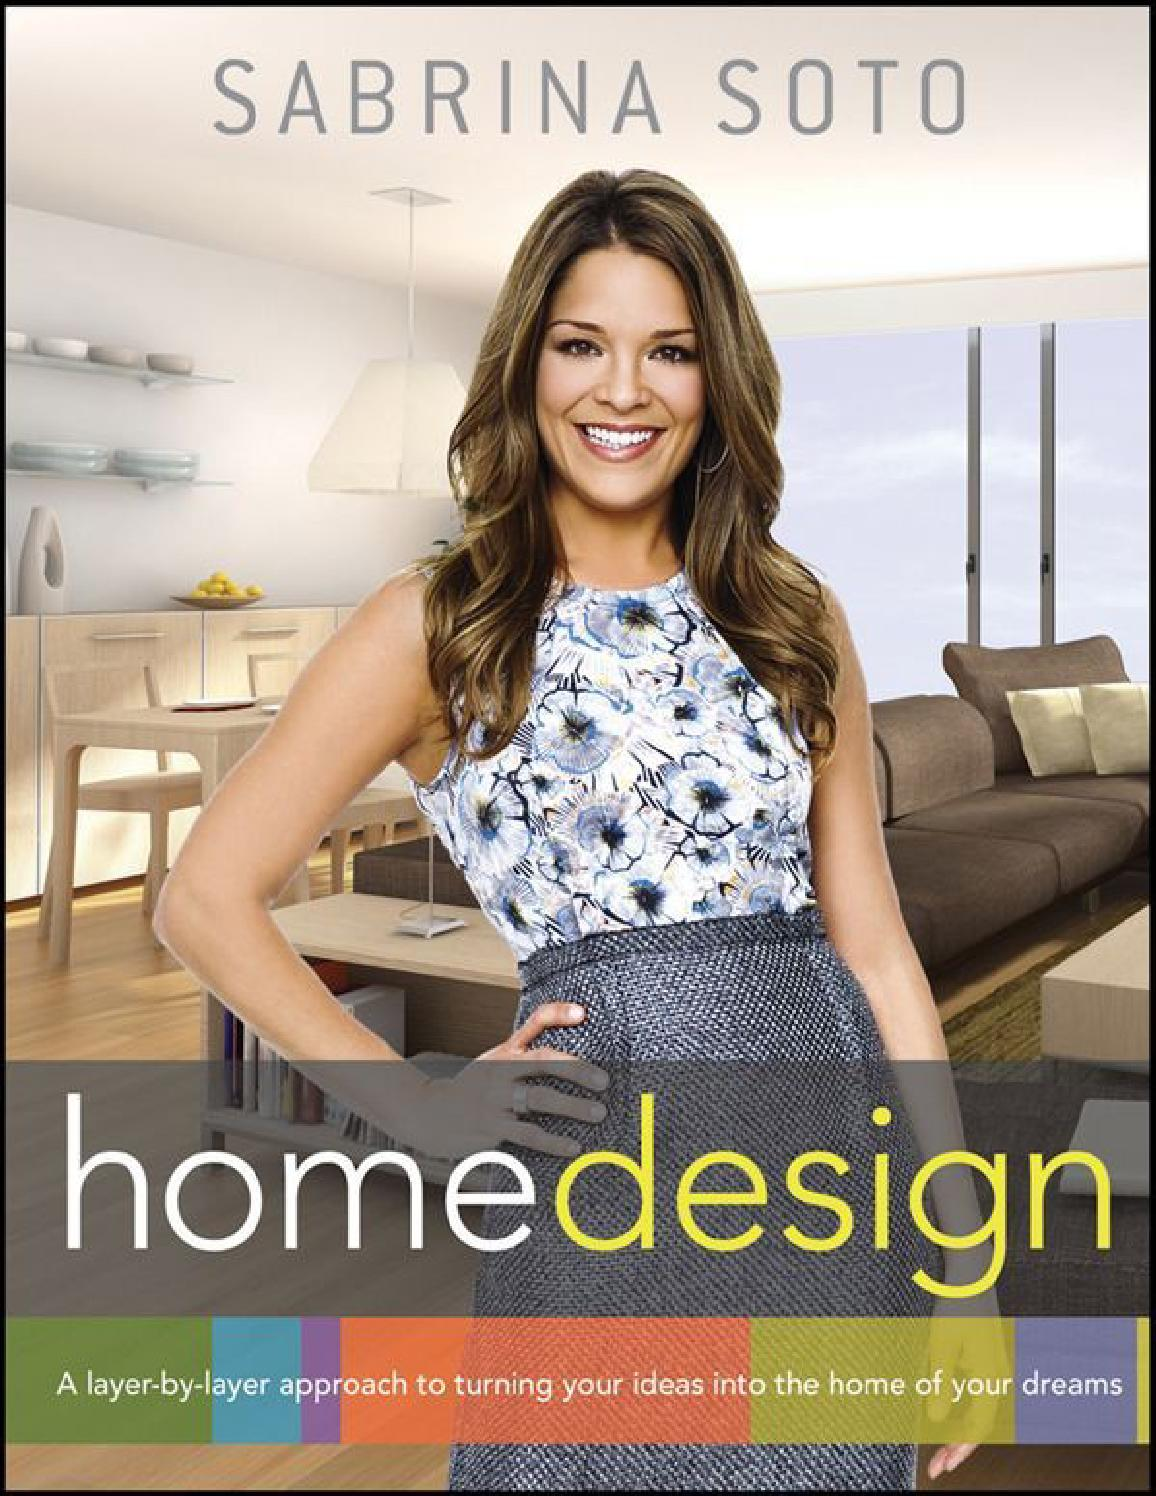 Sabrina soto home design a layer by layer approach to turning your ...